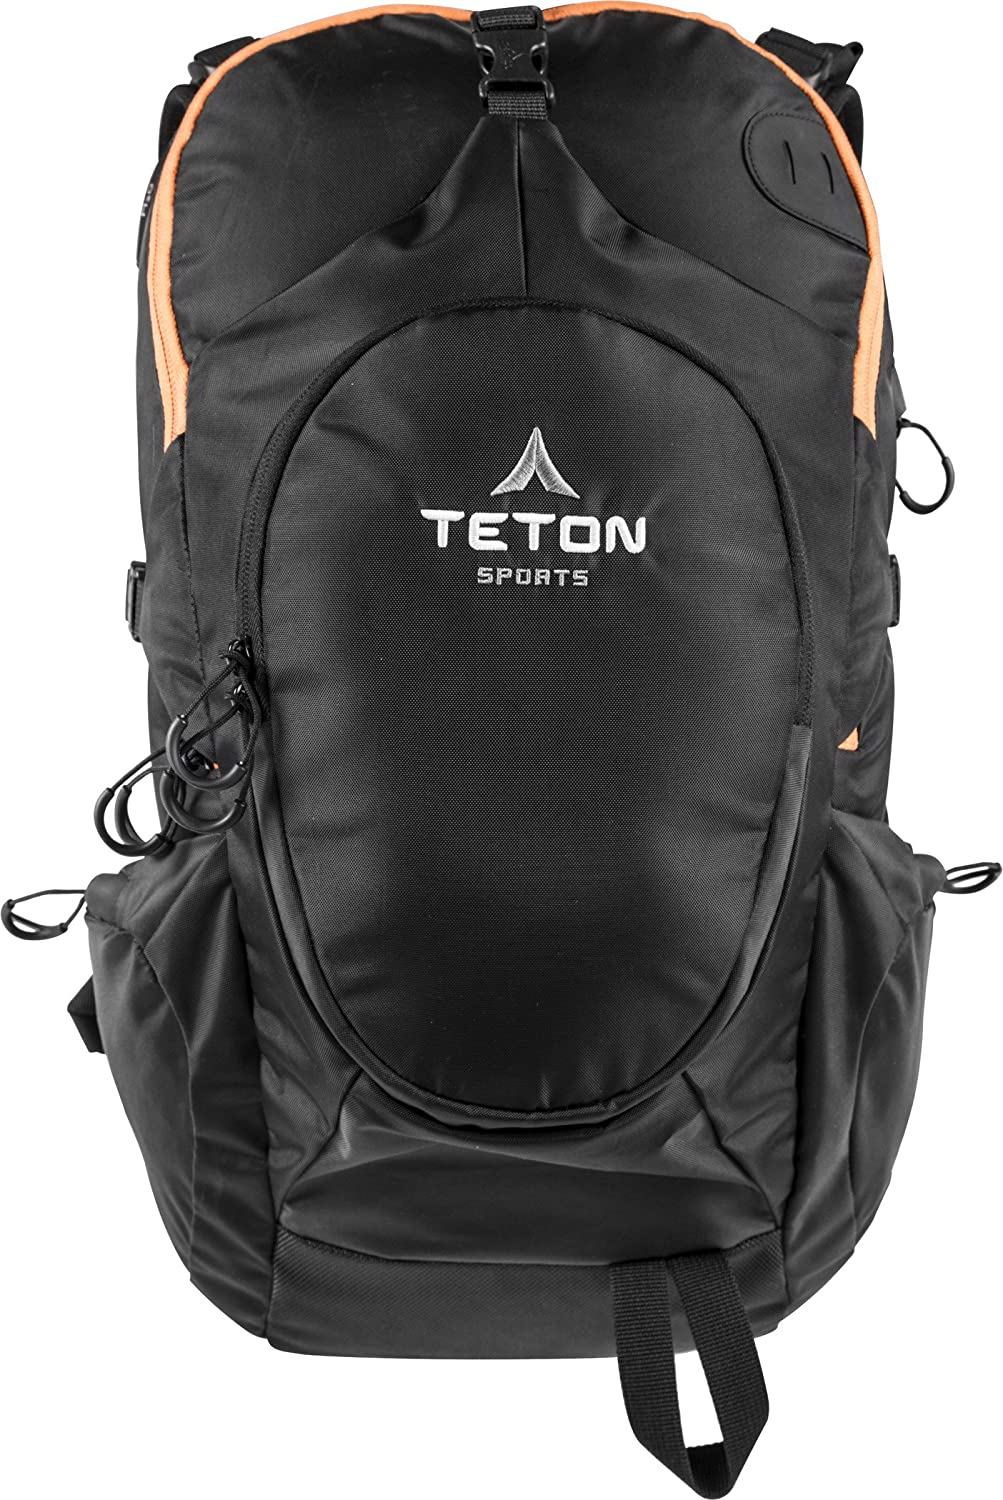 TETON Sports Rock 1800 Backpack; Lightweight Daypack; Hiking Backpack for Camping, Hunting, Travel, and Outdoor Sports; Sewn-in Rain Cover; Be Prepared for Those Unplanned Trips 1136